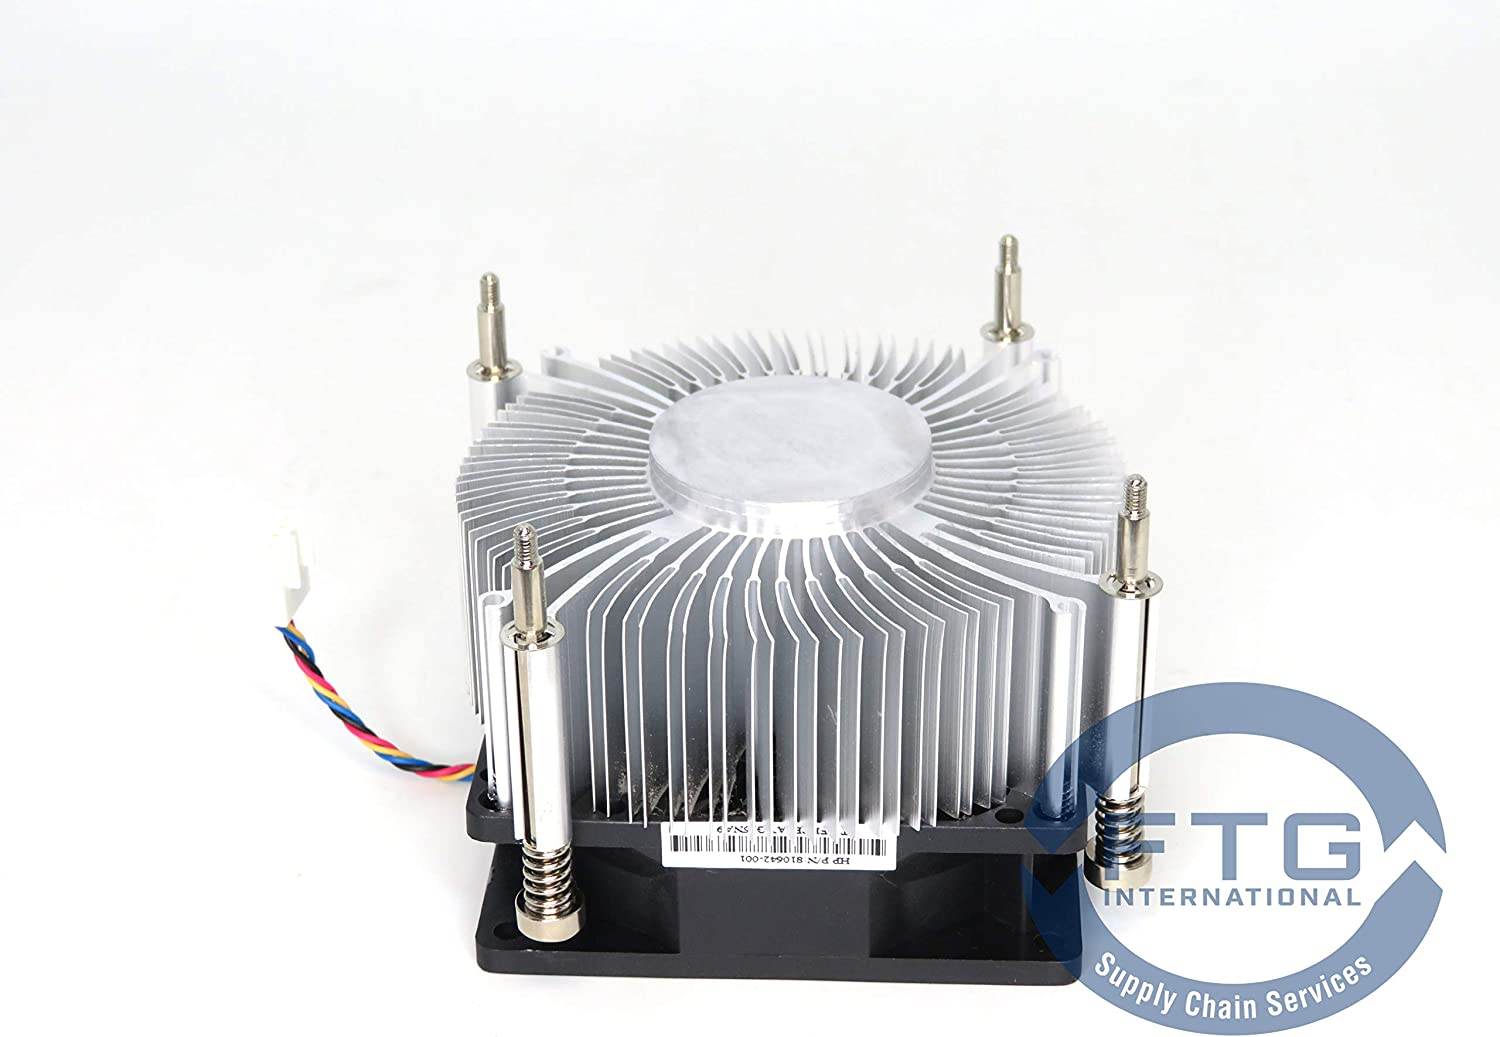 810642-001 Common Cooler 65W SFF